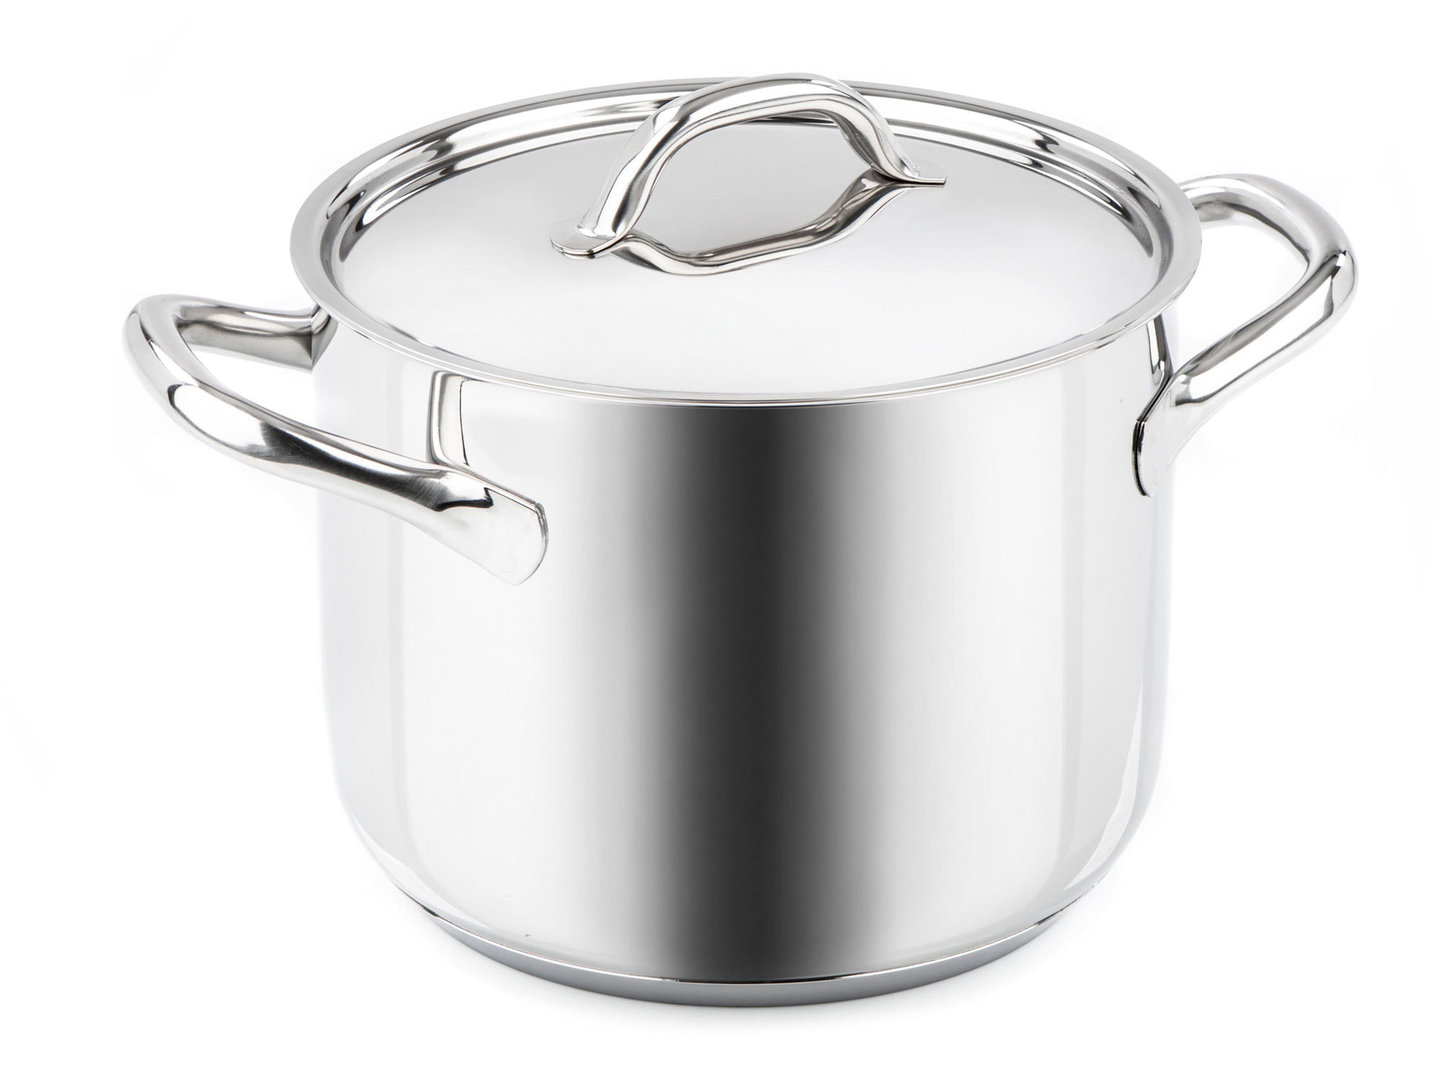 BARAZZONI stockpot CHEF LINE stainless steel 28 cm with lid 13.5 L